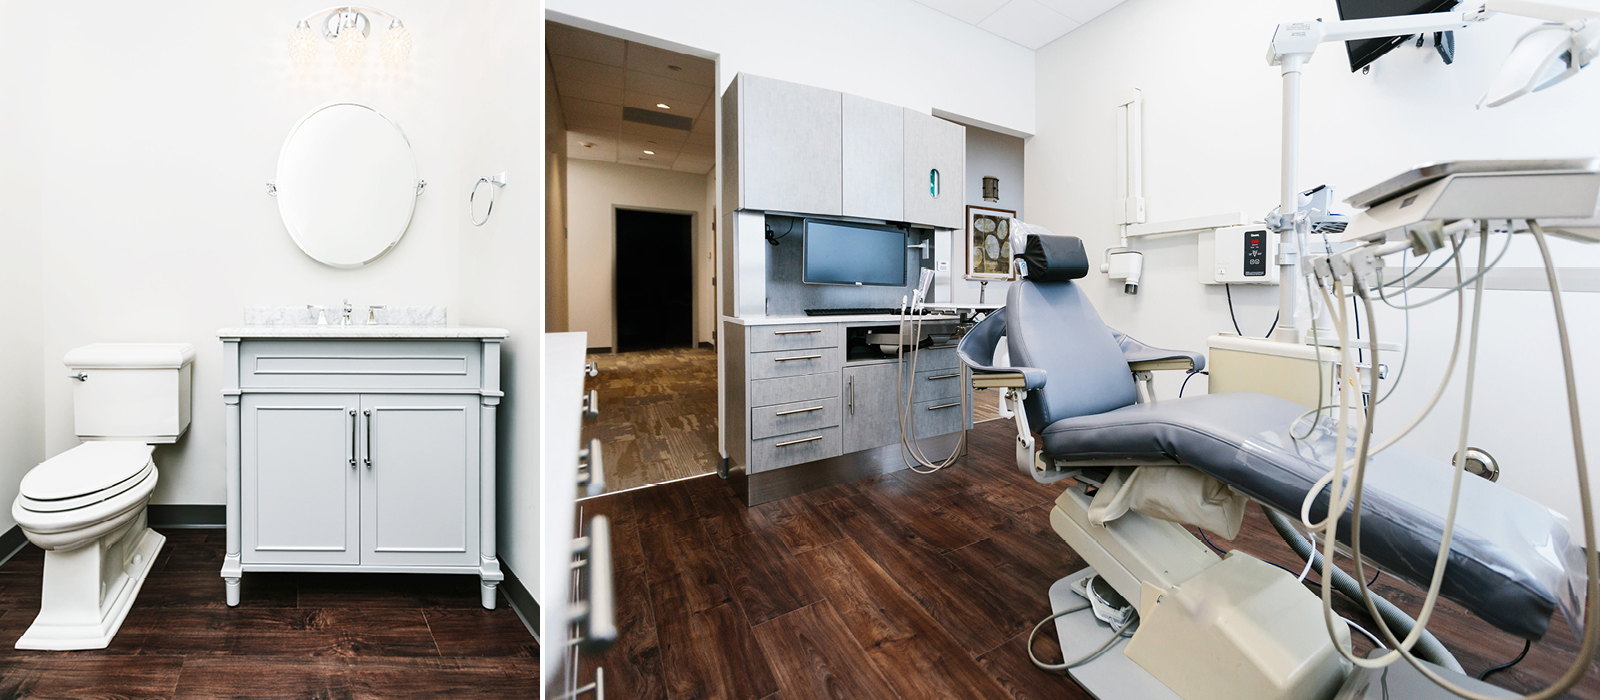 Cornerstone Dental Care bathroom facilities and treatment room